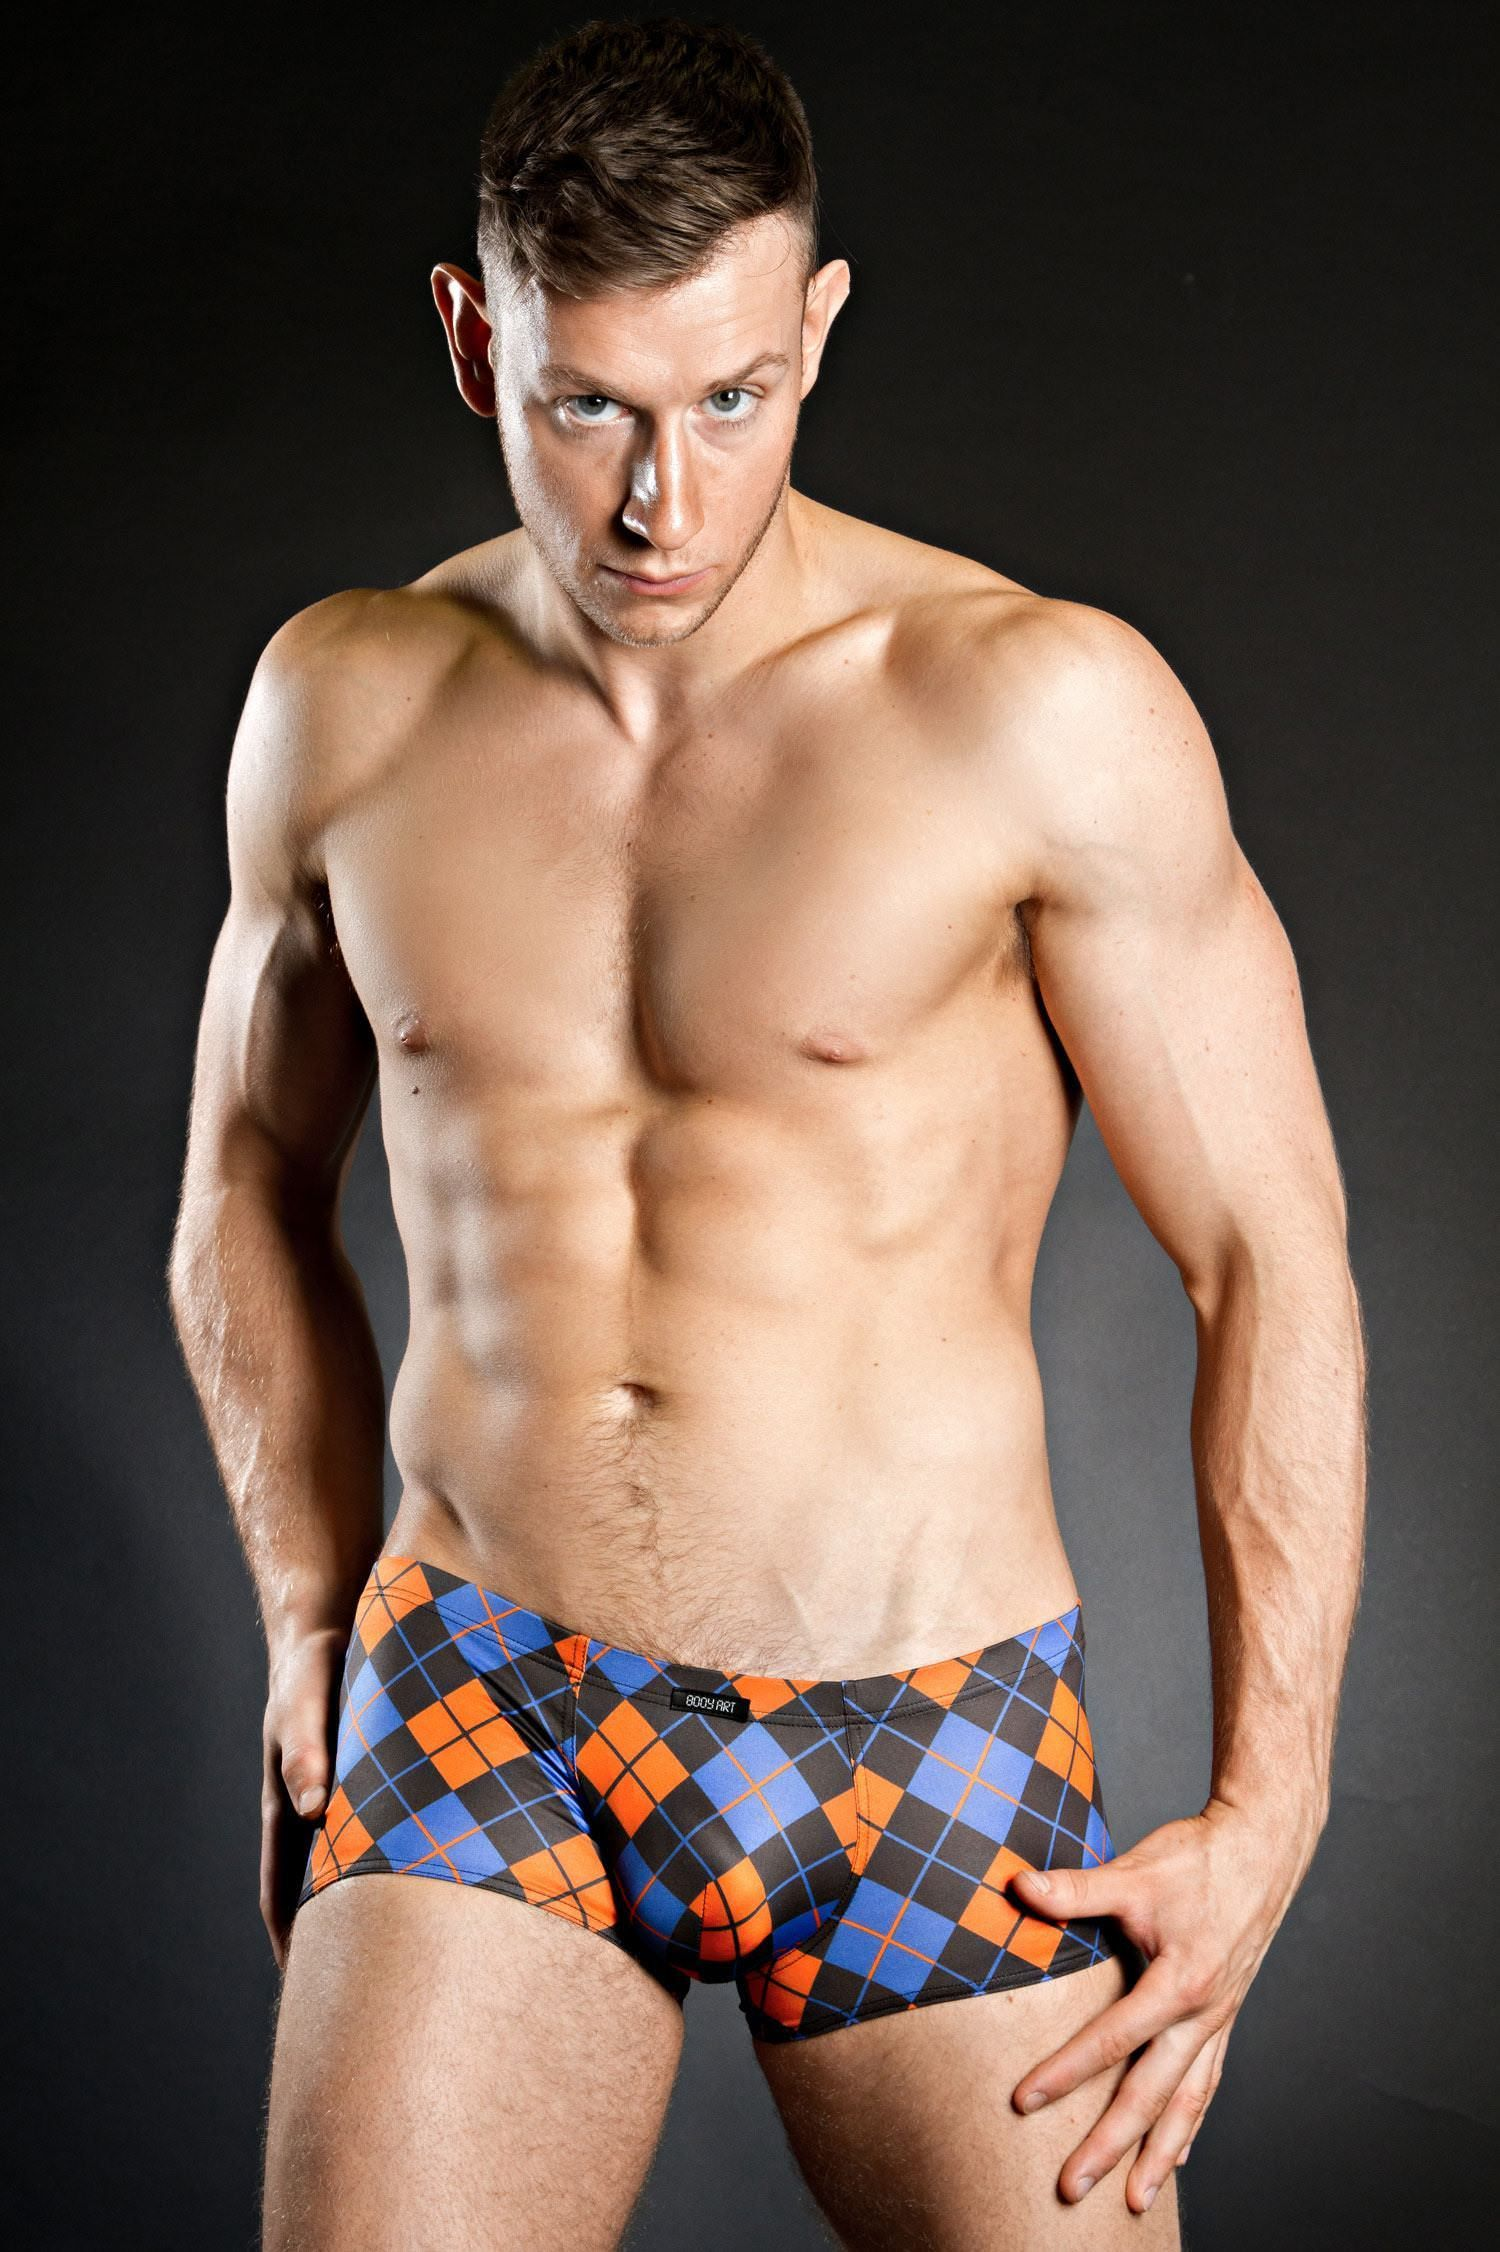 6c2459cf44 body-art-fellos-mini-pant-frontNot strictly tartan but we think argyle  counts as a check. Whether you agree or not this Body Art Fellos Mini Pant  shows off ...